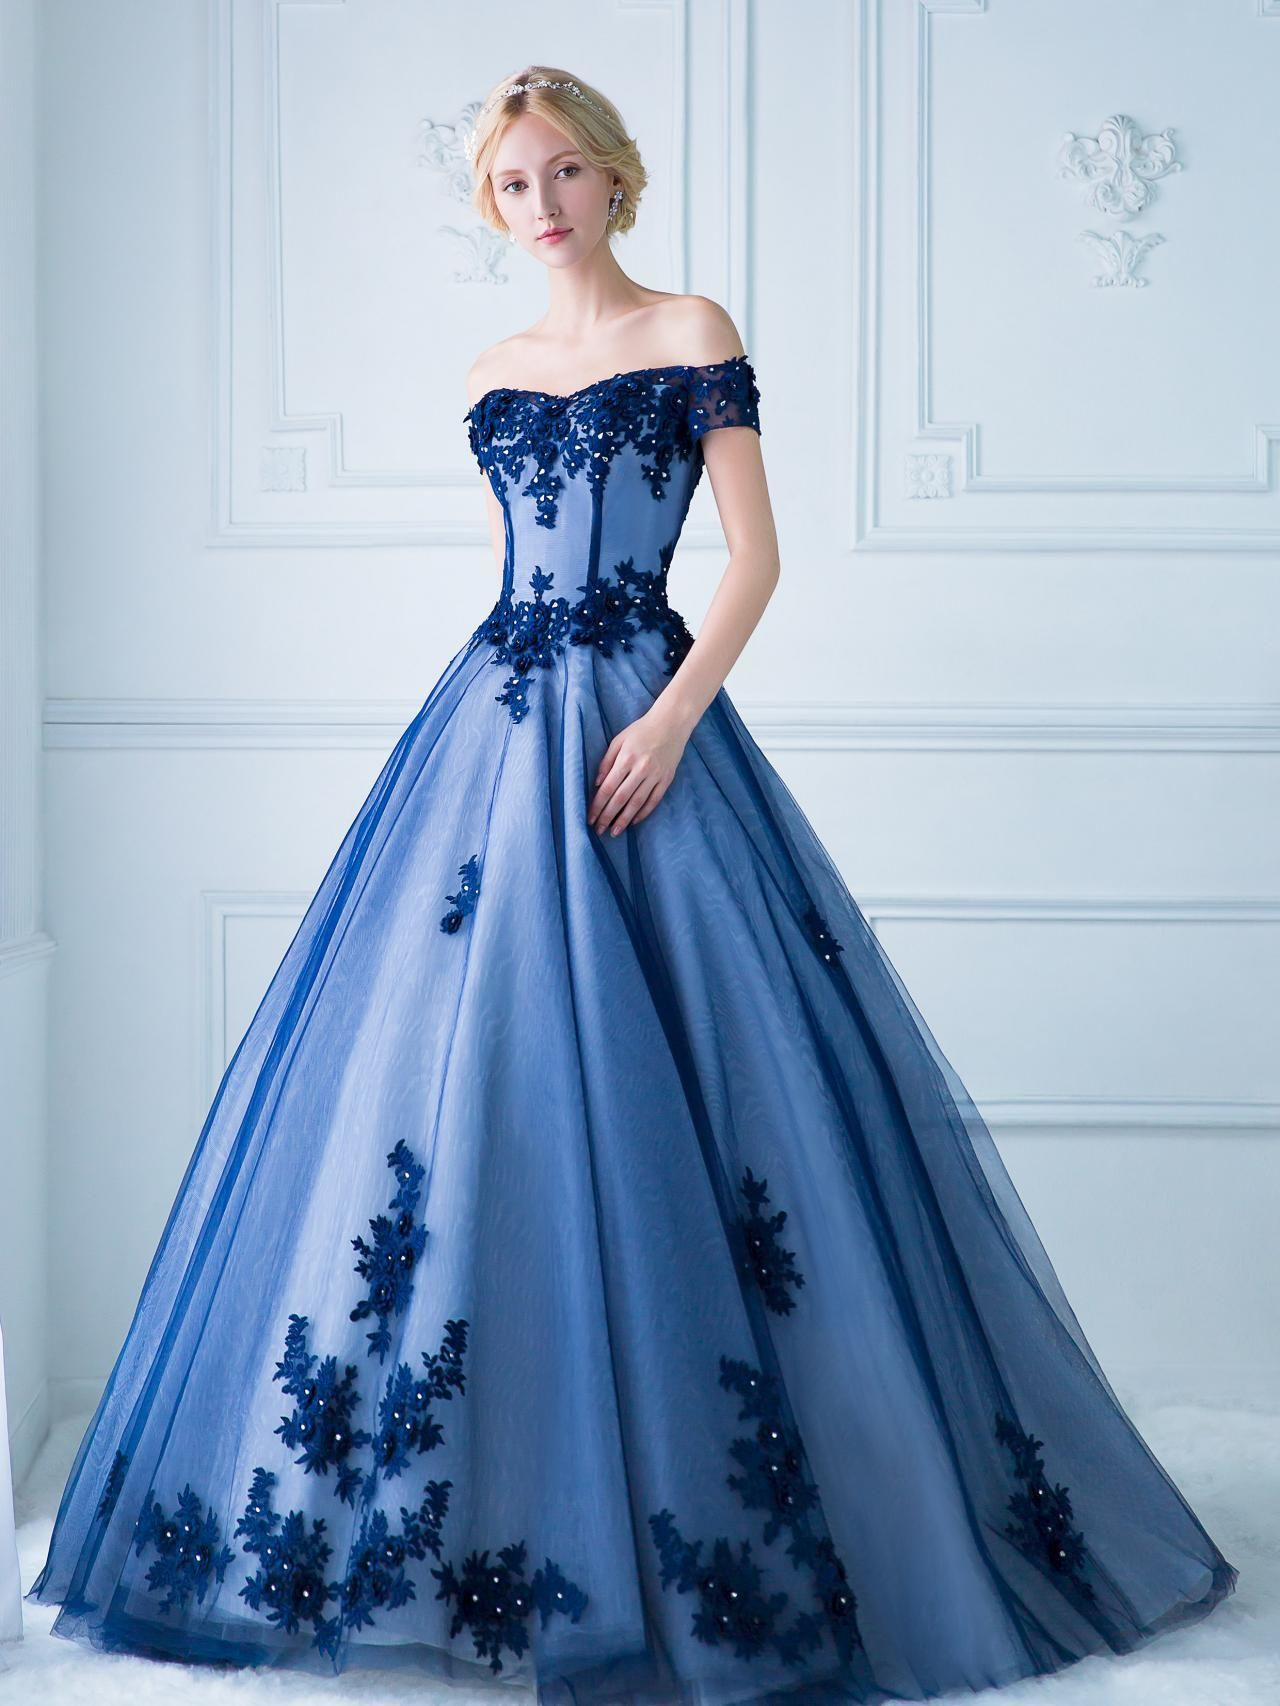 Tulle prom dress ball gown offtheshoulder longfloorlength with